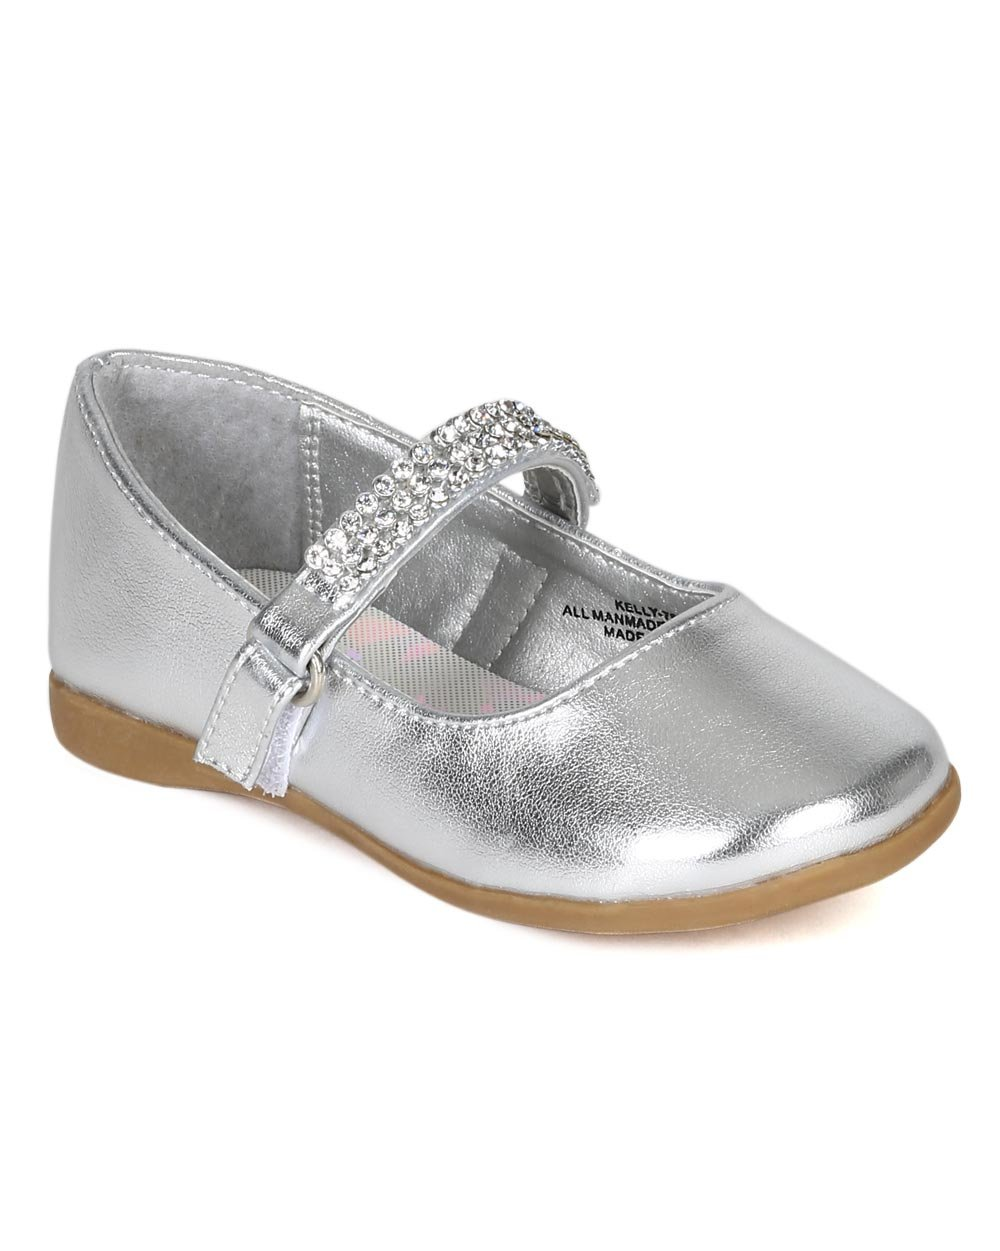 Metallic Leatherette Round Toe Rhinestone Mary Jane Ballerina Flat (Toddler/Little Girl) CA07 - Silver (Size: Toddler 6)